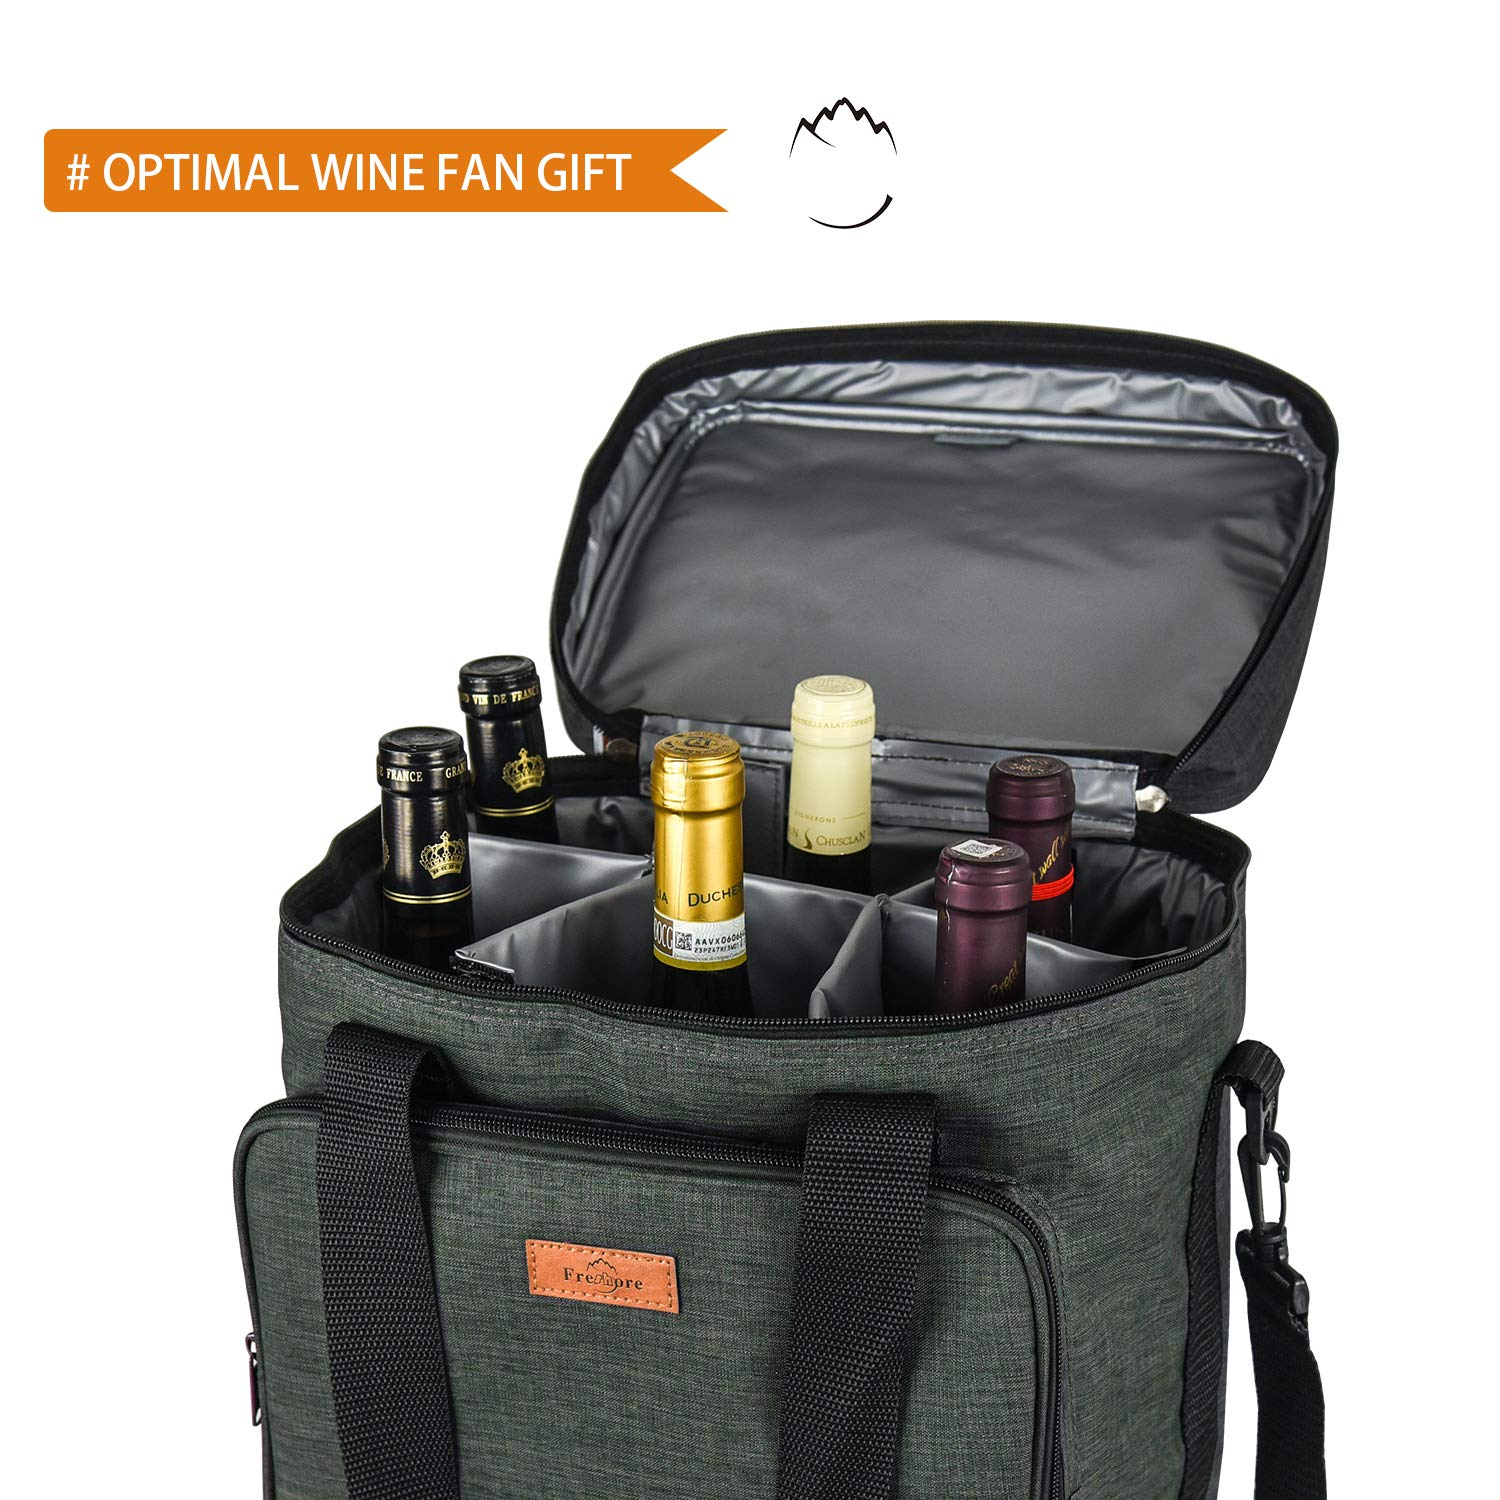 Freshore Insulated Wine Carrier 6 bottle Bag Tote Removable Padded Divider - Portable Travel Padded Cooler Carrying Canvas Case Adjustable Shoulder Strap - (Dark Green) by Freshore (Image #3)